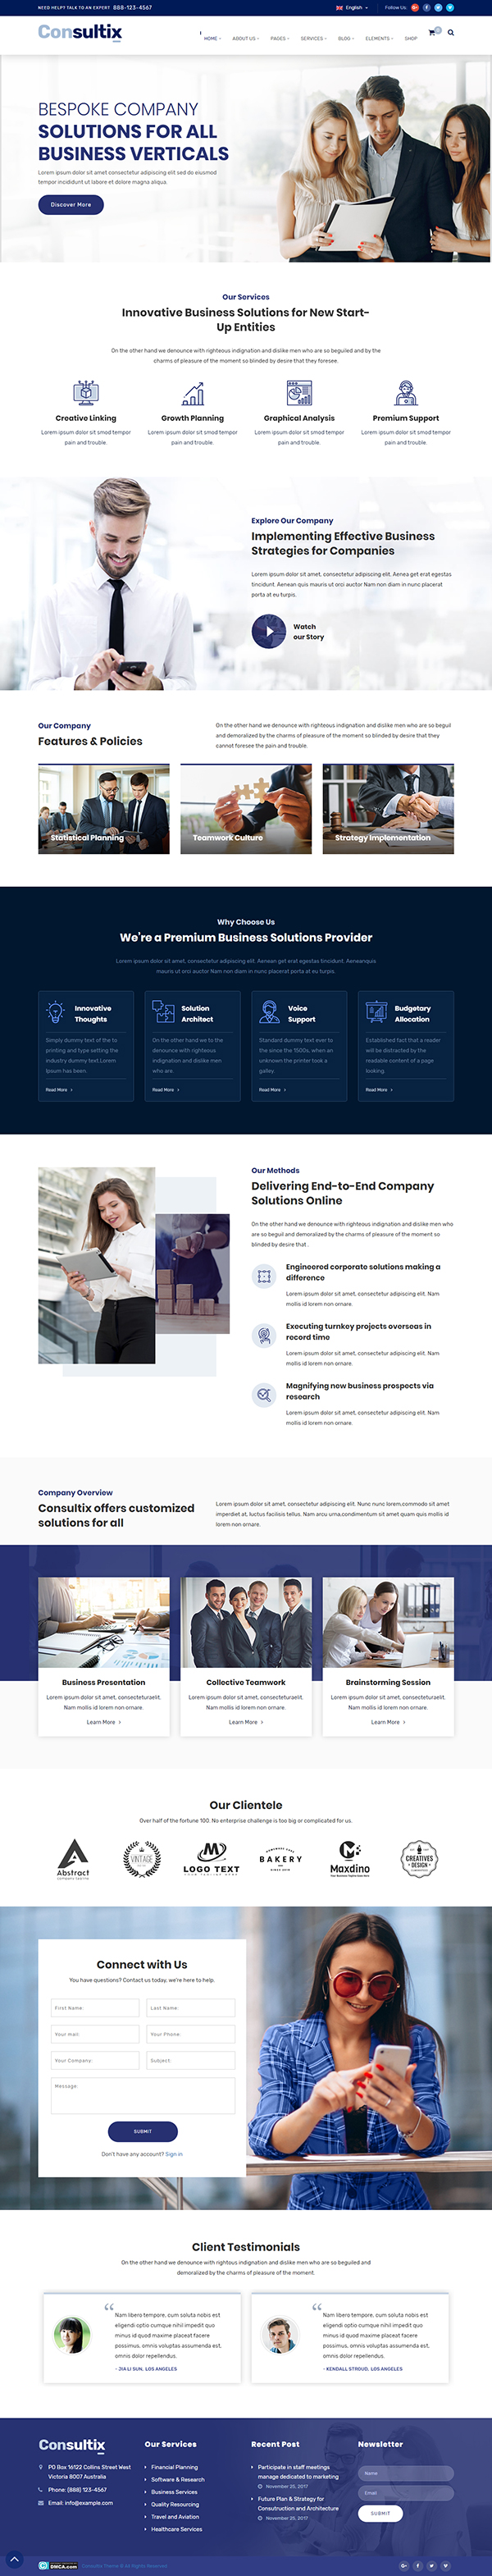 Consultix - Business Consulting WordPress Theme